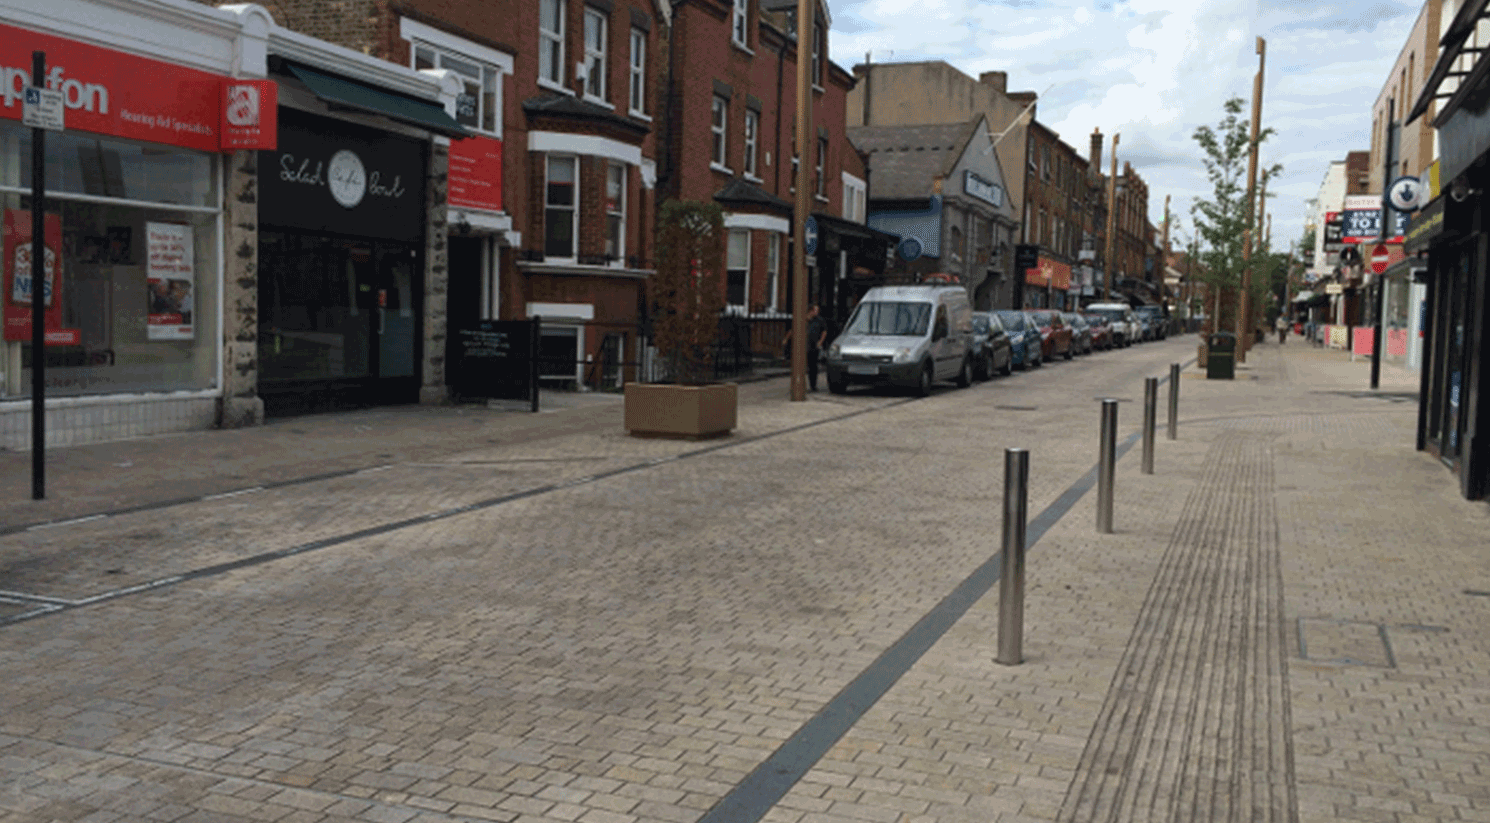 Shared Space – Why the Fuss?